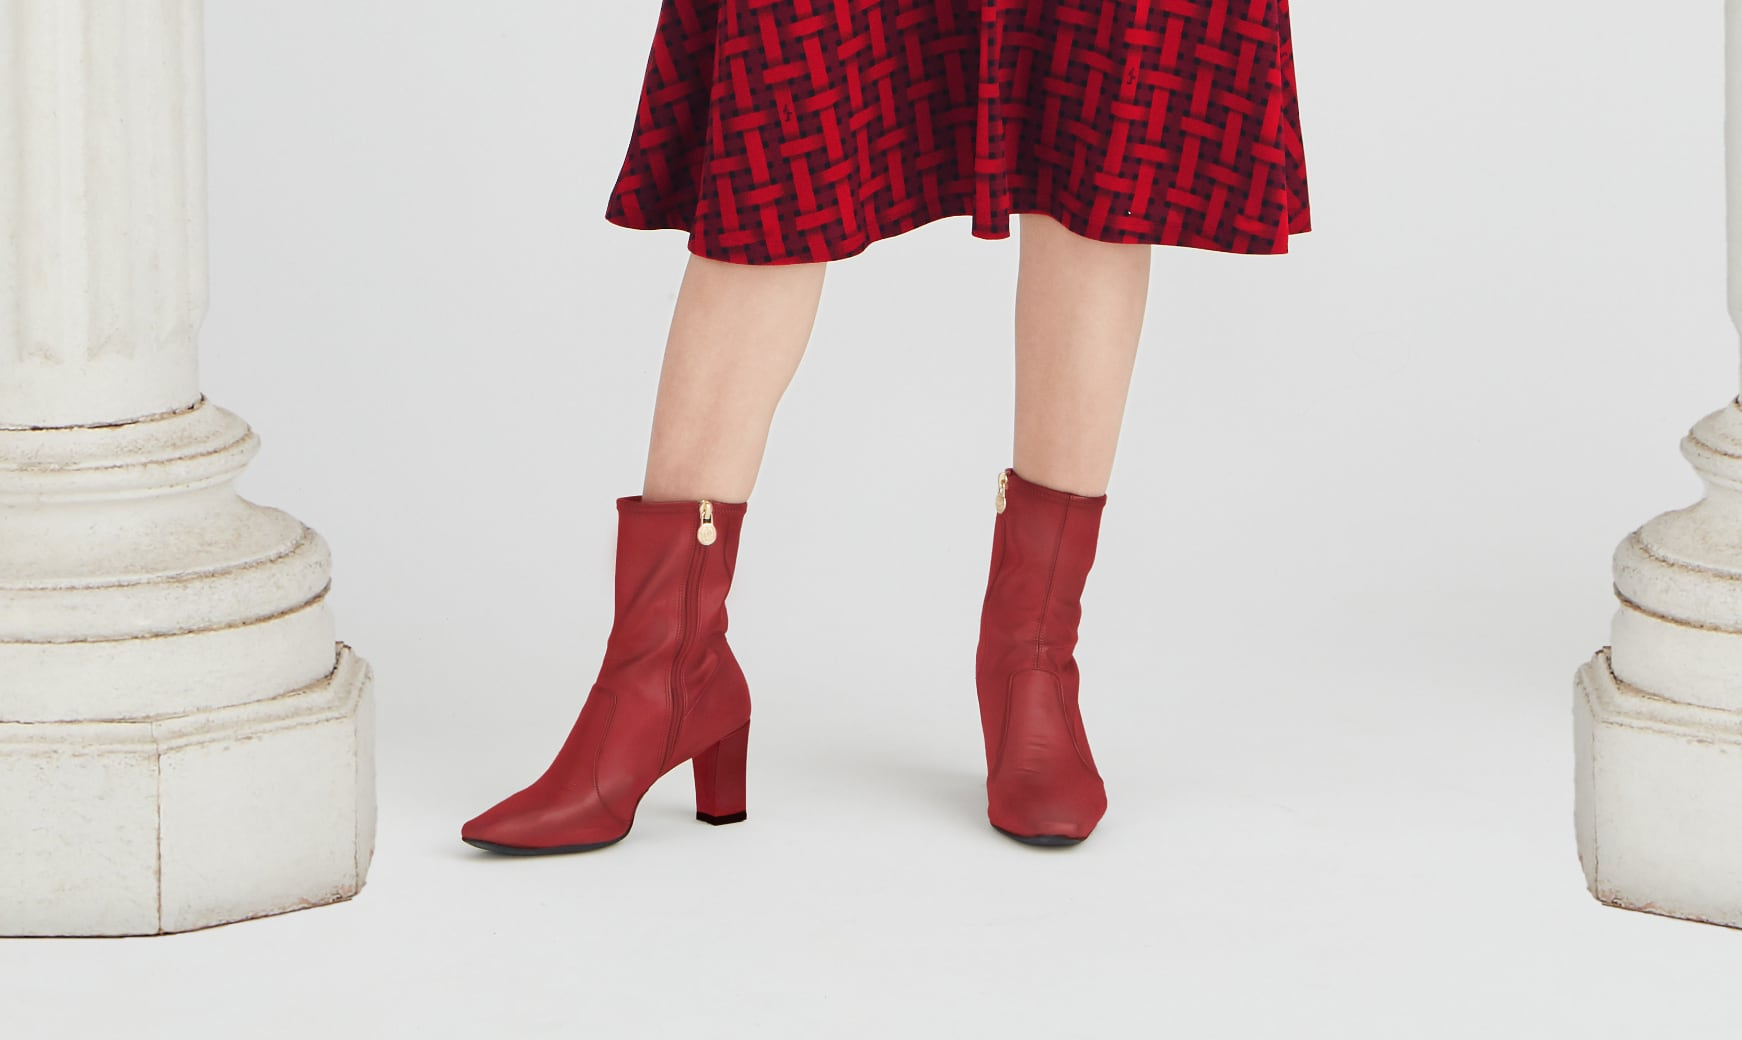 07_Red_Boot_Perfect_Match.jpg